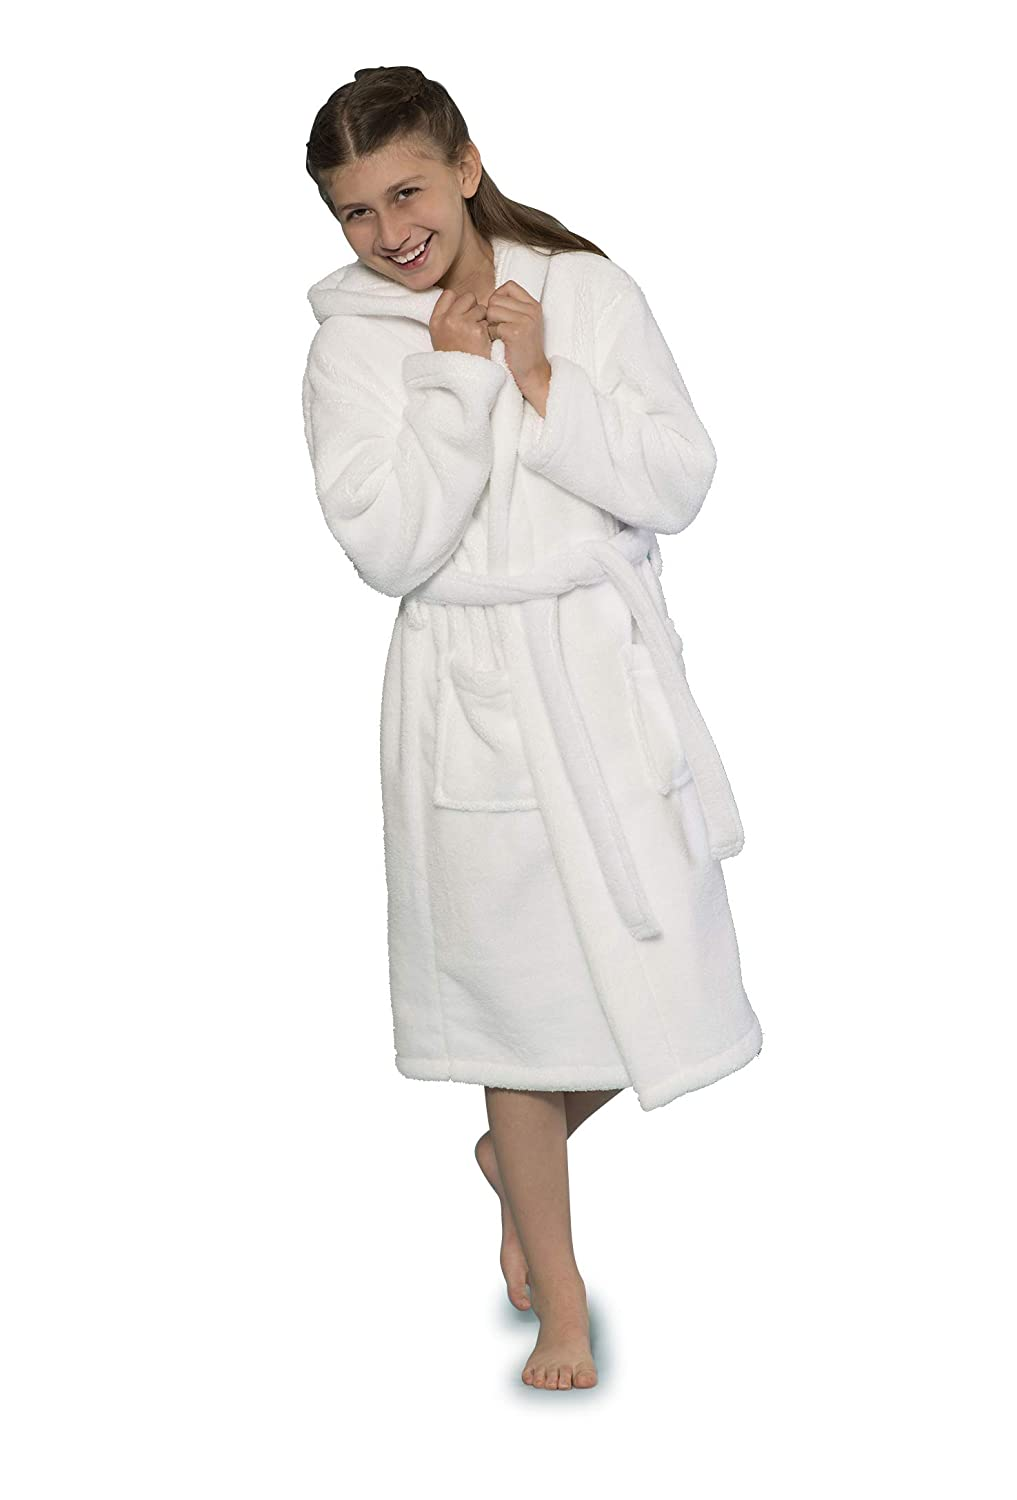 Boys and Girls Hooded Robe Plush Microfleece Bathrobe Soft Made in Turkey